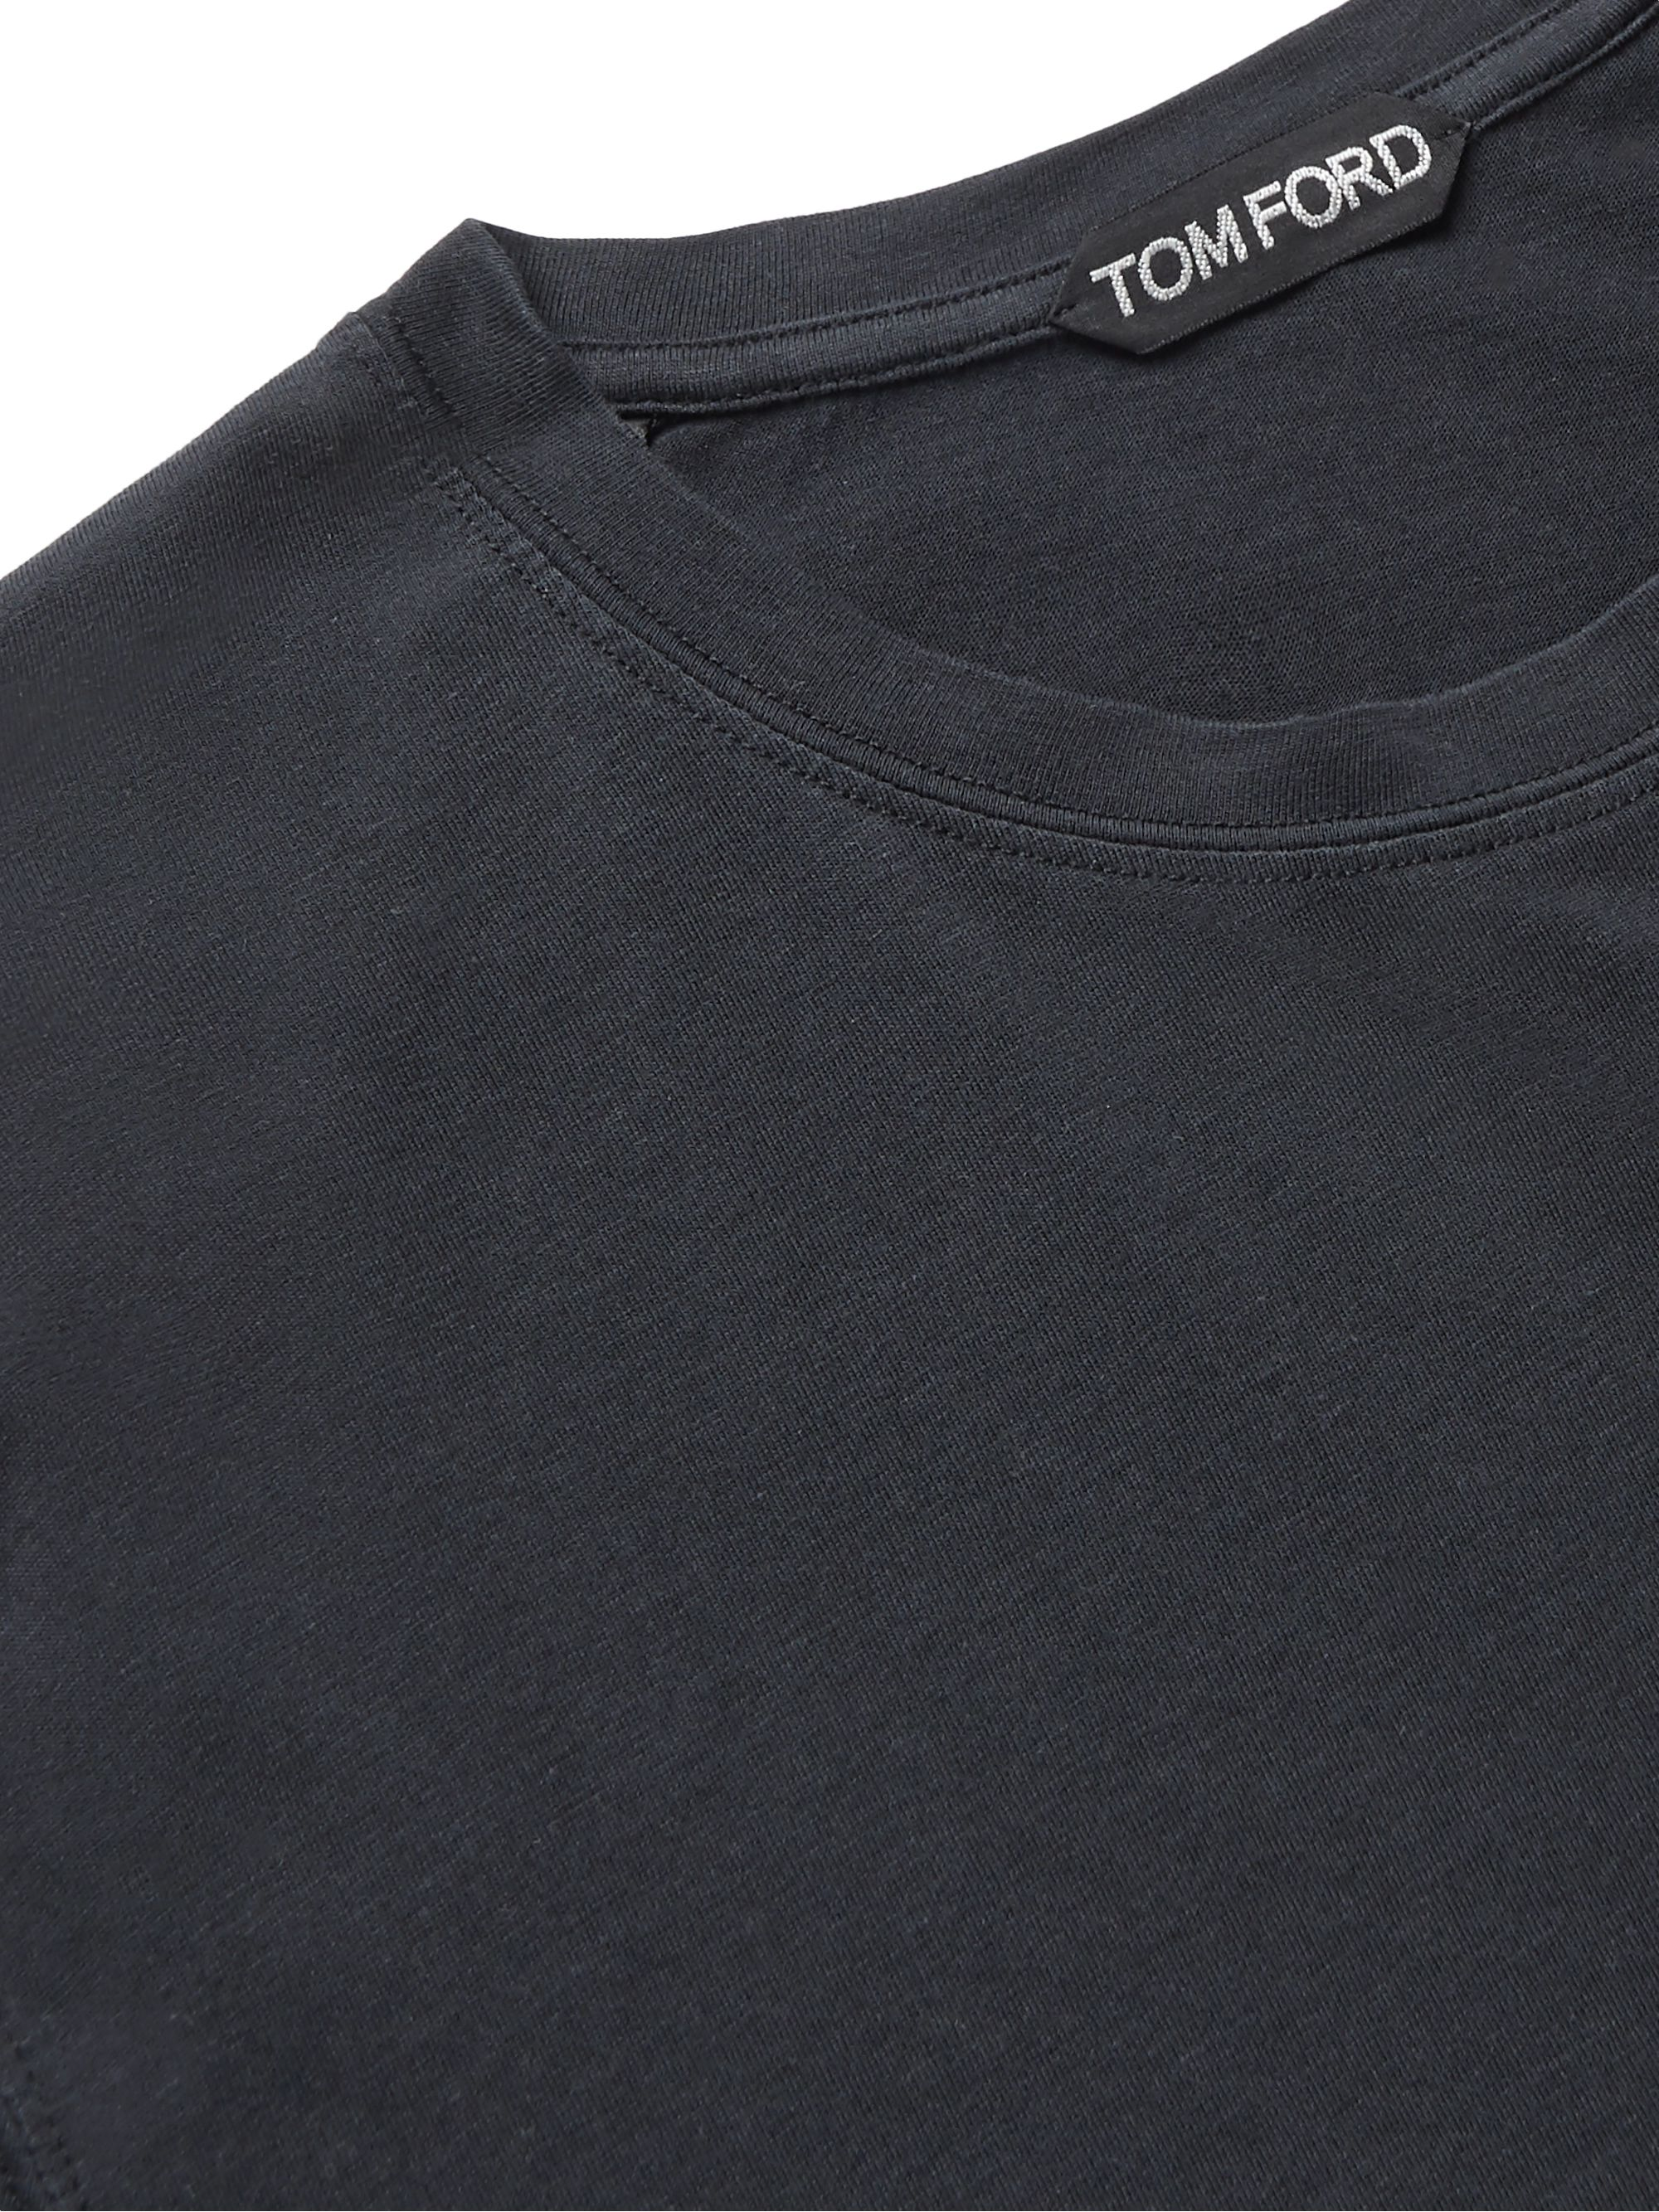 Black Lyocell And Cotton-blend Jersey T-shirt | Tom Ford